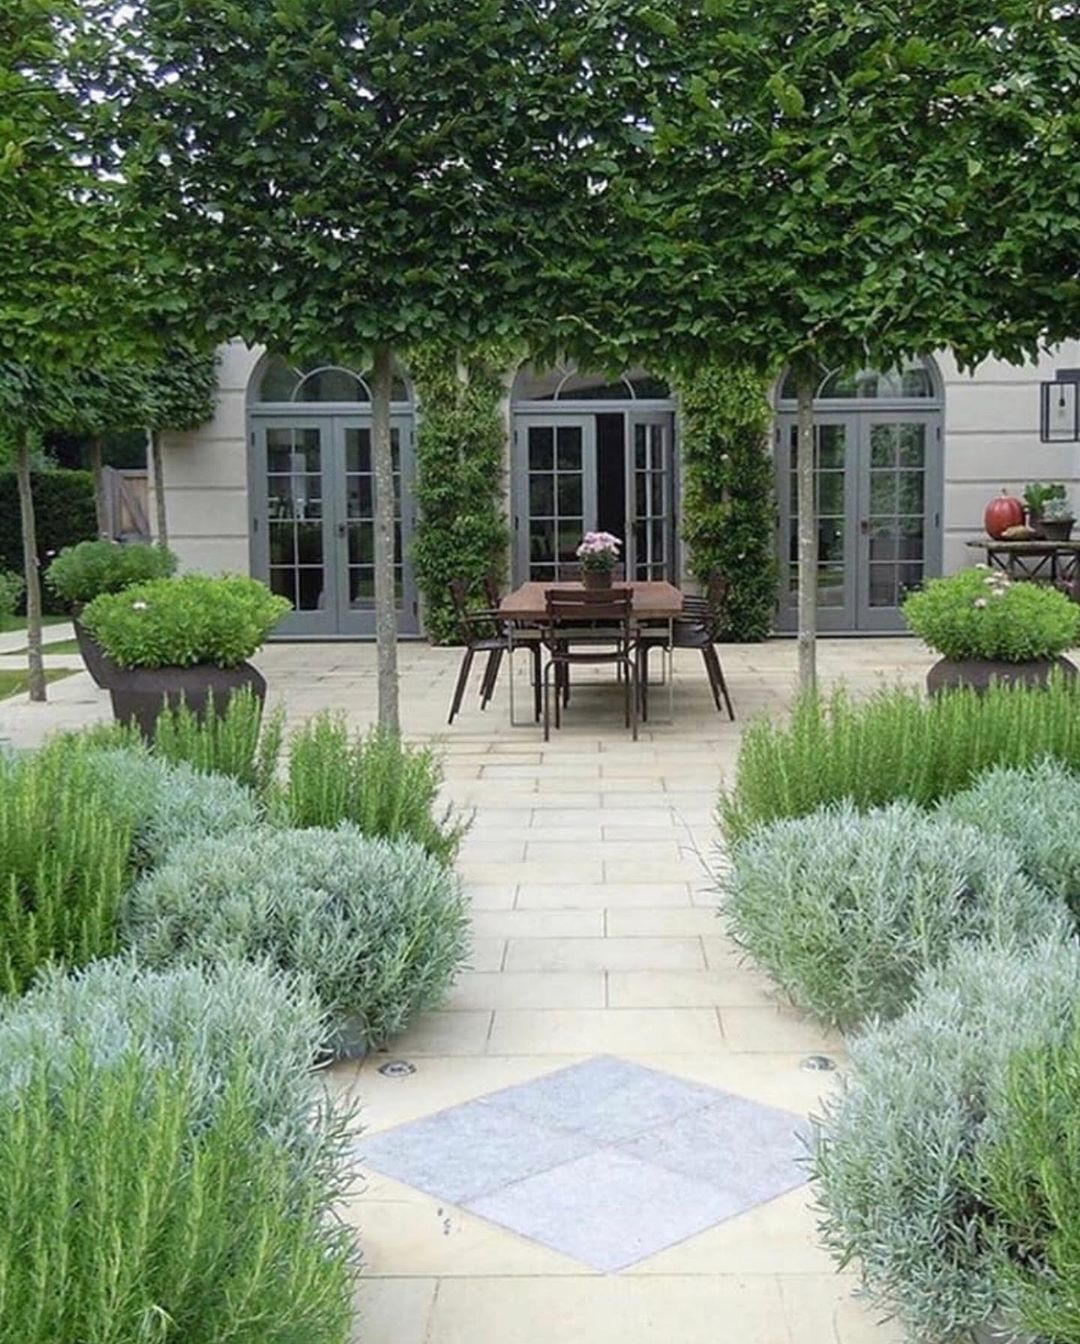 Socal Landscape Design On Instagram Lovely Inspiration From Gardens And Architecture A Stunn Formal Garden Design Garden Design Large Backyard Landscaping